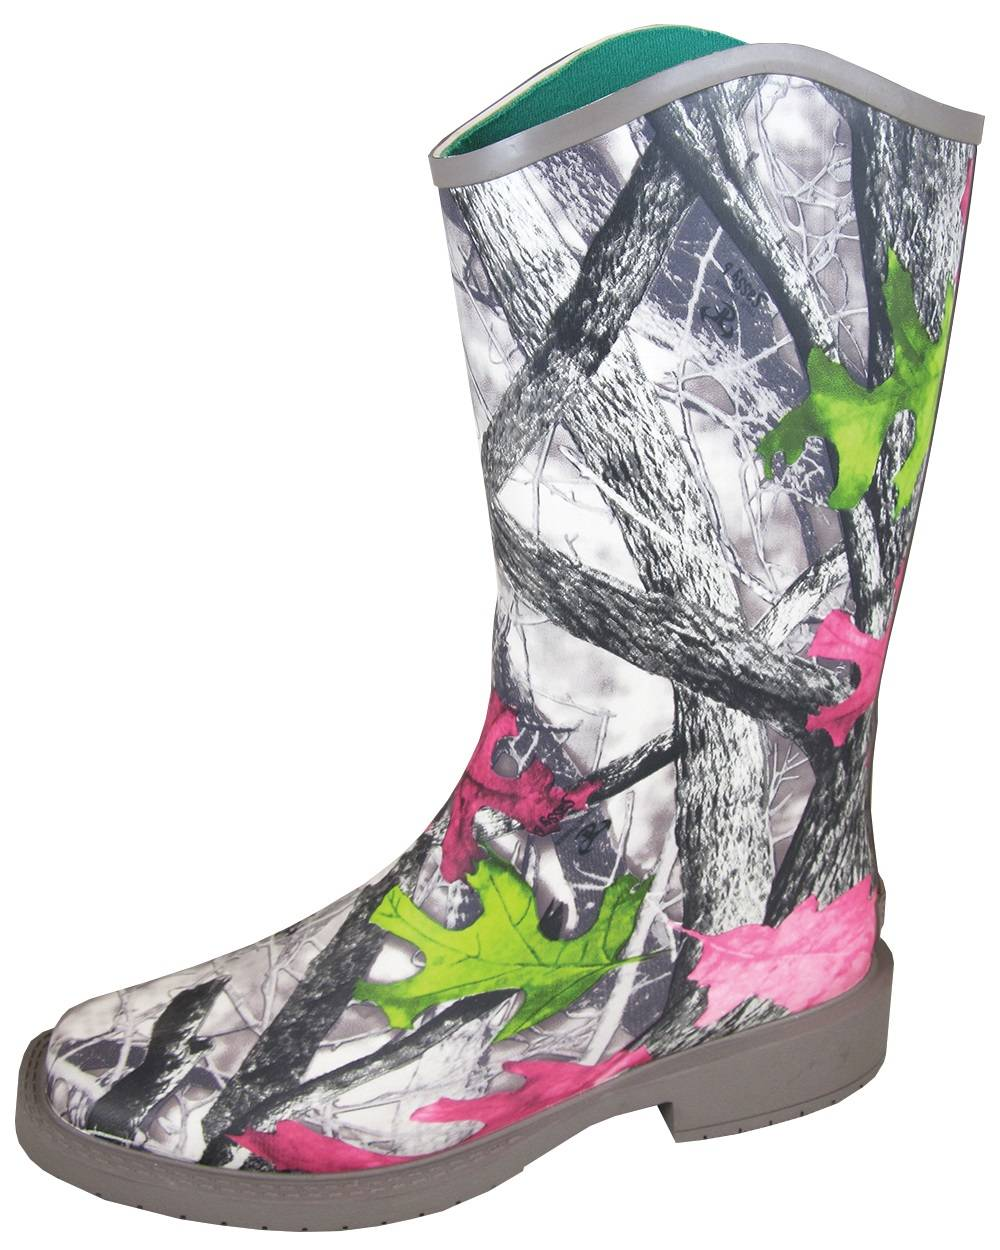 Smoky Mountain Oconee Boots - Ladies - Camo Pink